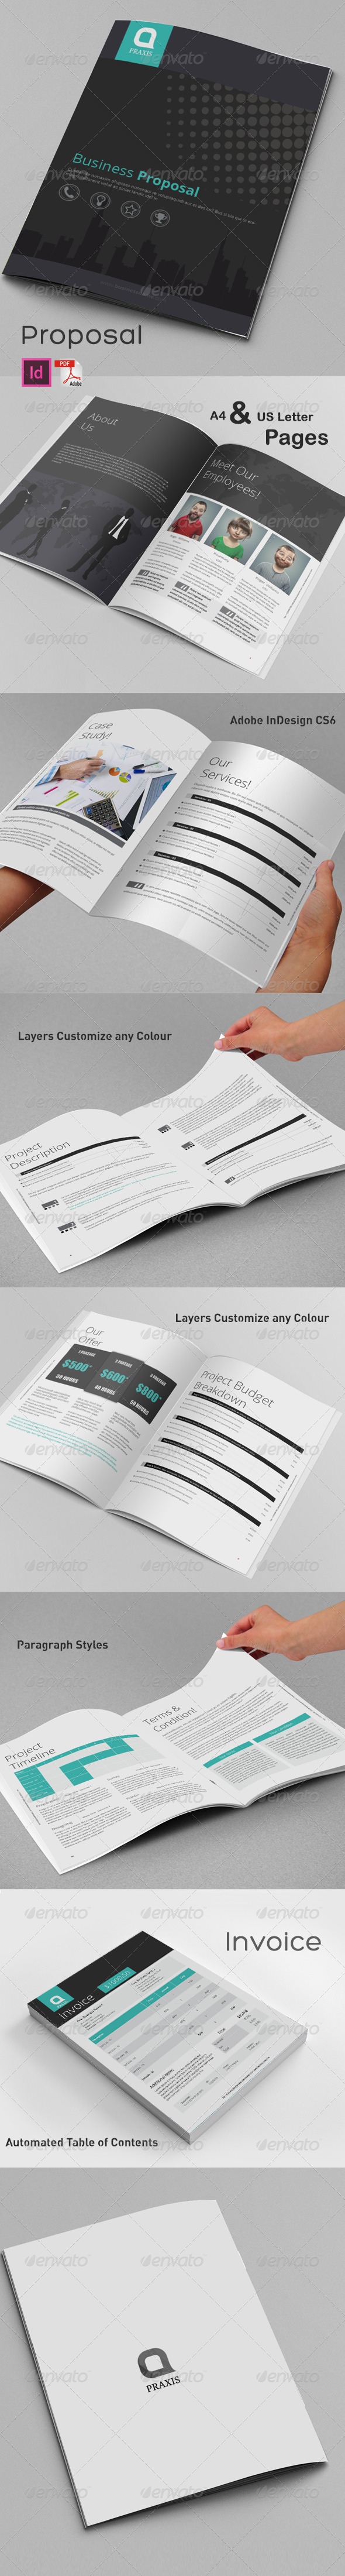 GraphicRiver Business Proposal 8713554